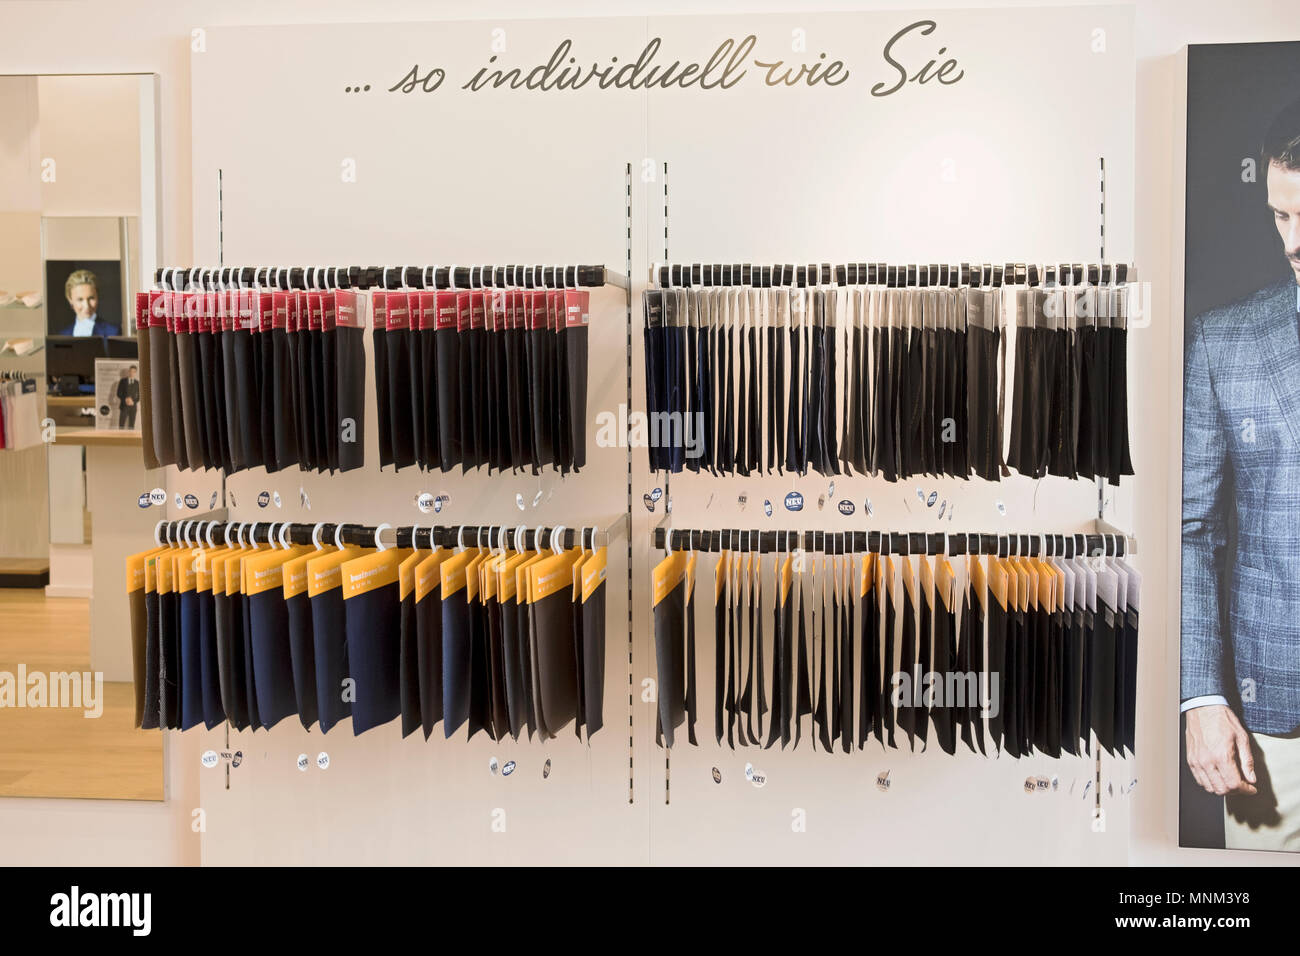 Fabric swatches for custom made suits at Kuhn Handmade Suits in Nuremburg, Germany. - Stock Image